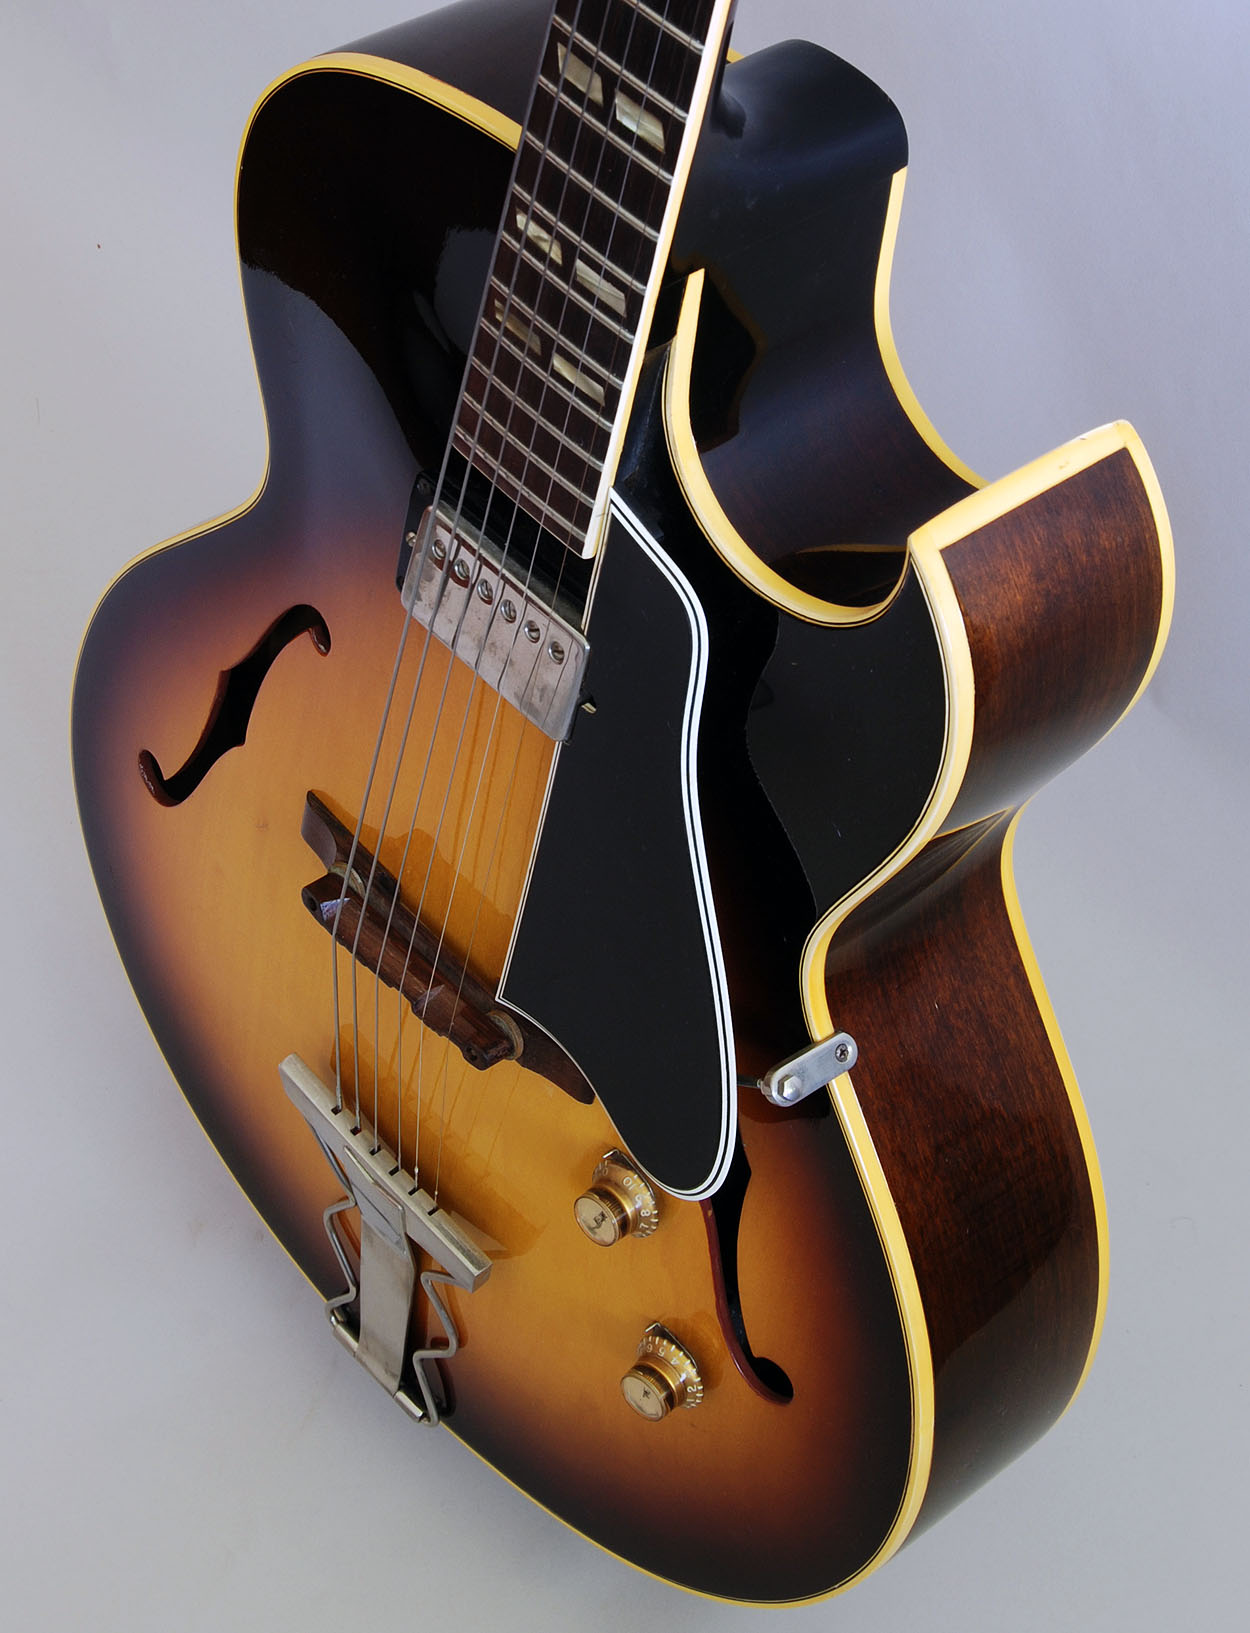 Side By Side For Sale >> Gibson ES-175 Guitar For Sale